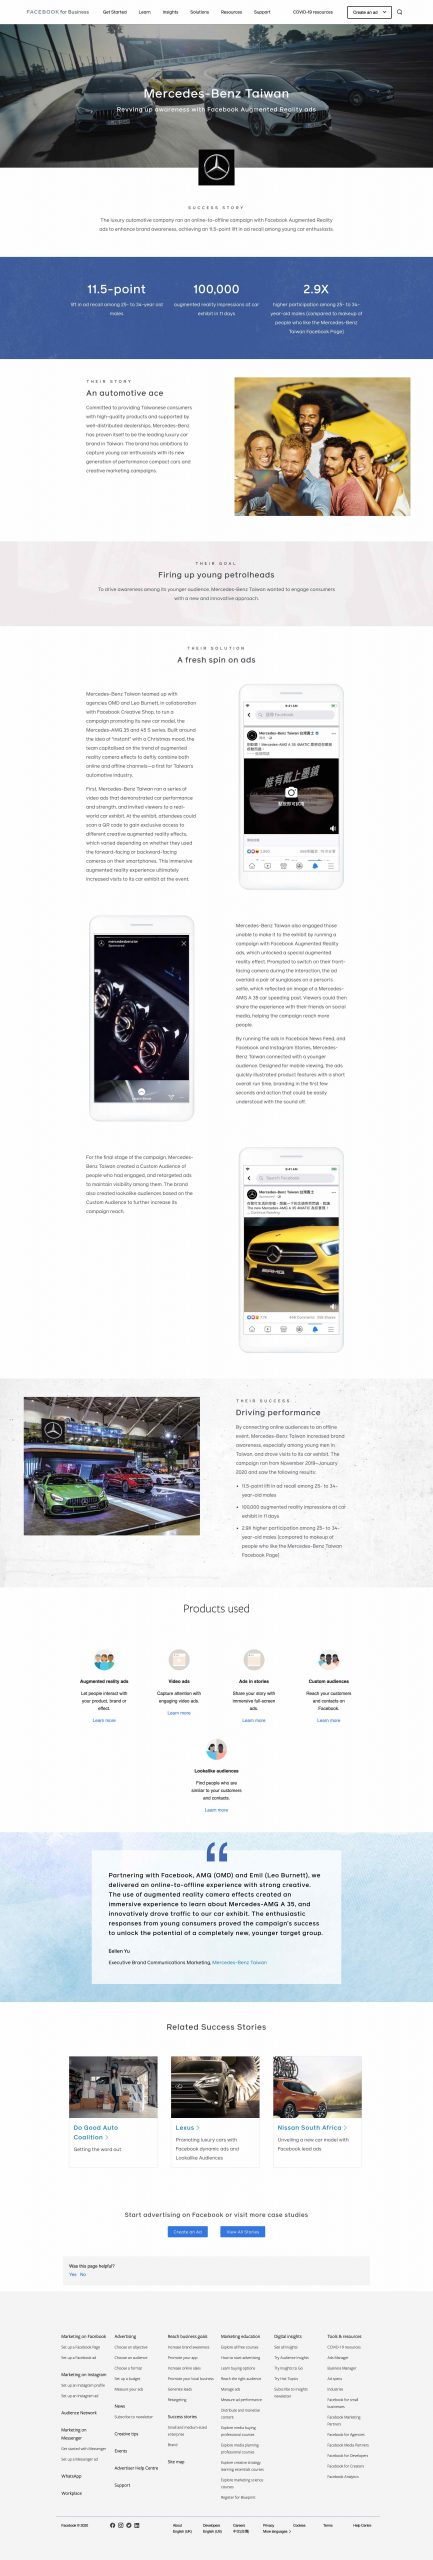 Facebook Instagram Case study 05